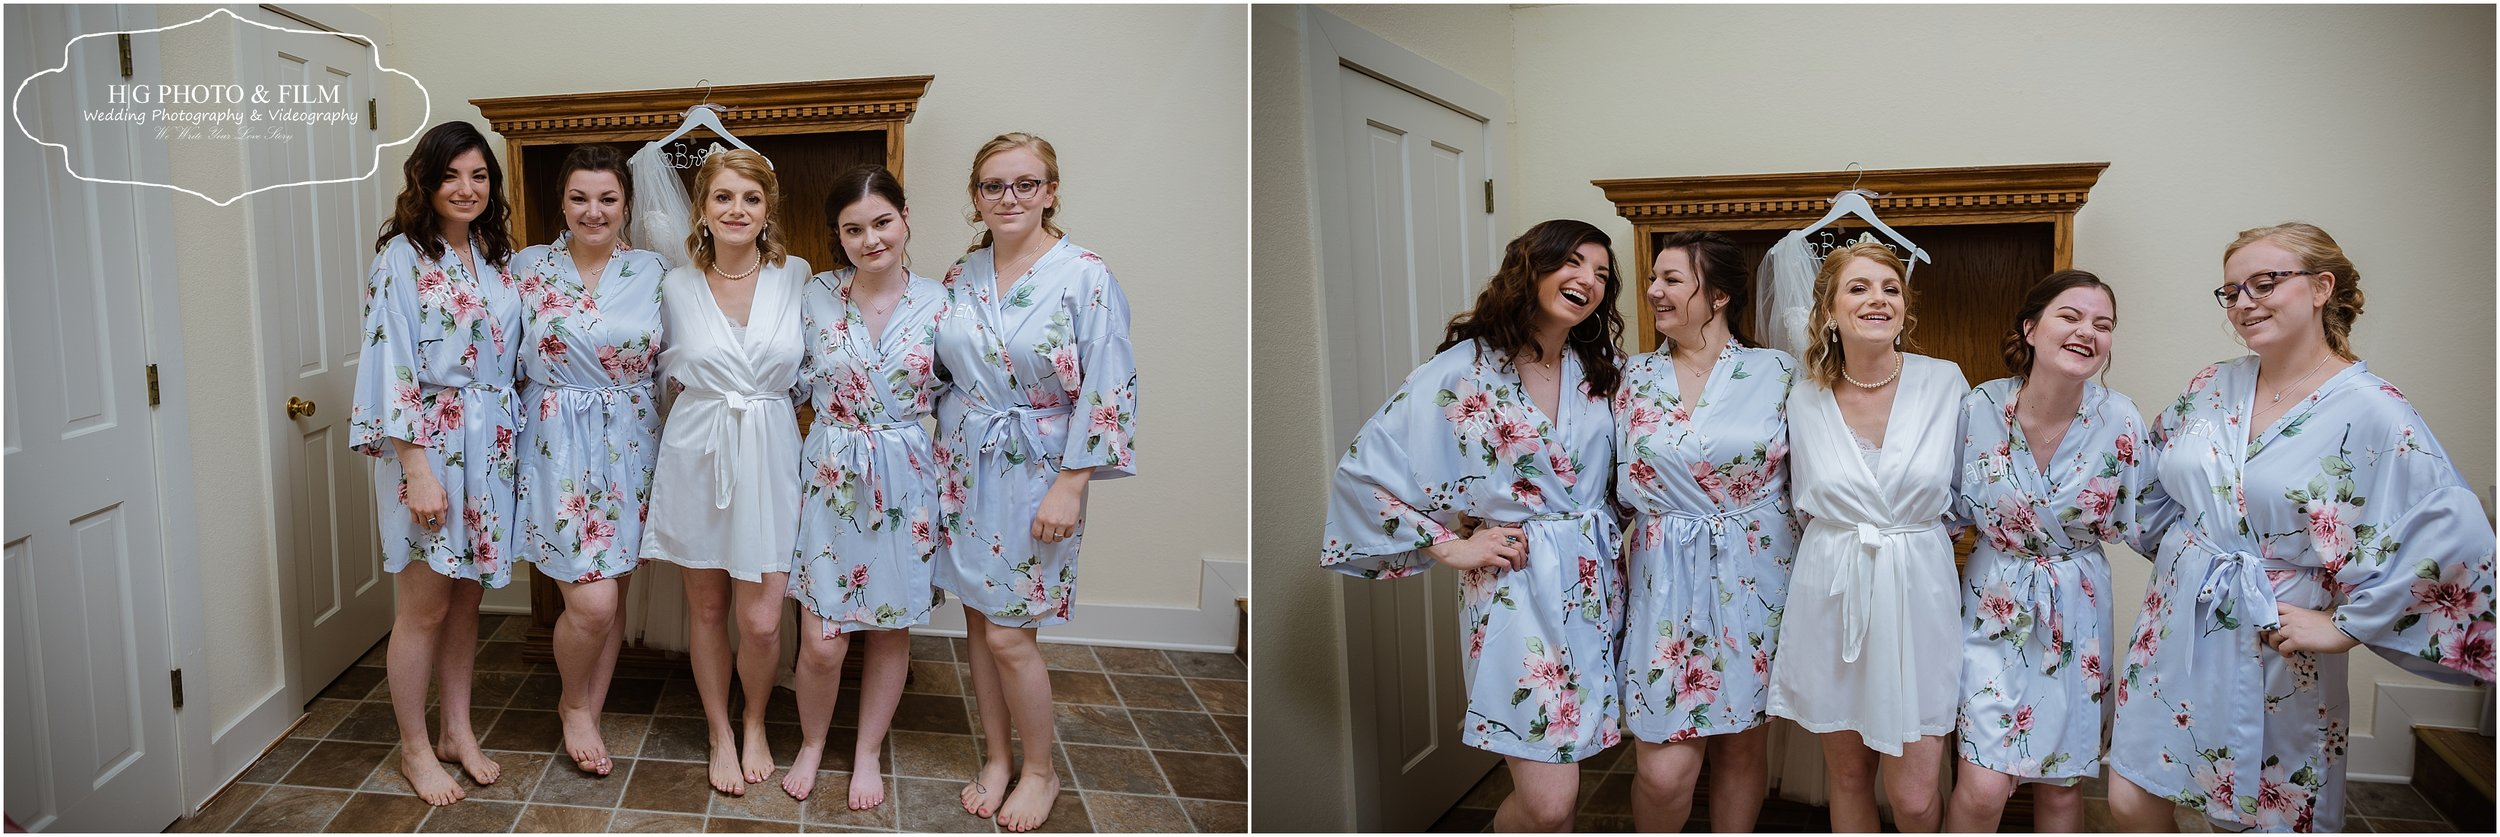 Love the robes she choose for her bridemaids